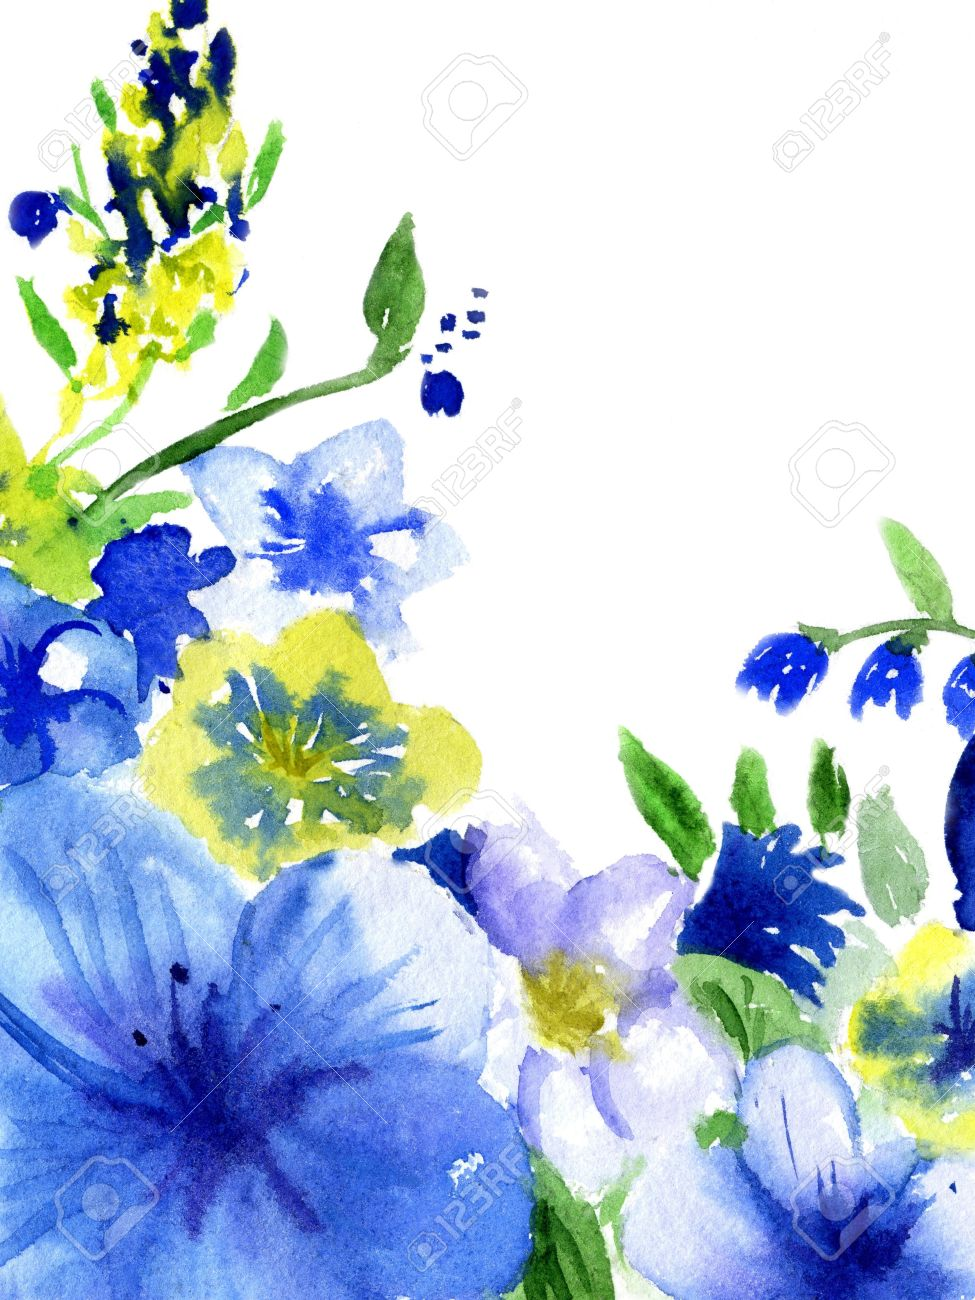 watercolor dark blue and yellow flowers on a white background stock photo picture and royalty free image image 19092029 watercolor dark blue and yellow flowers on a white background